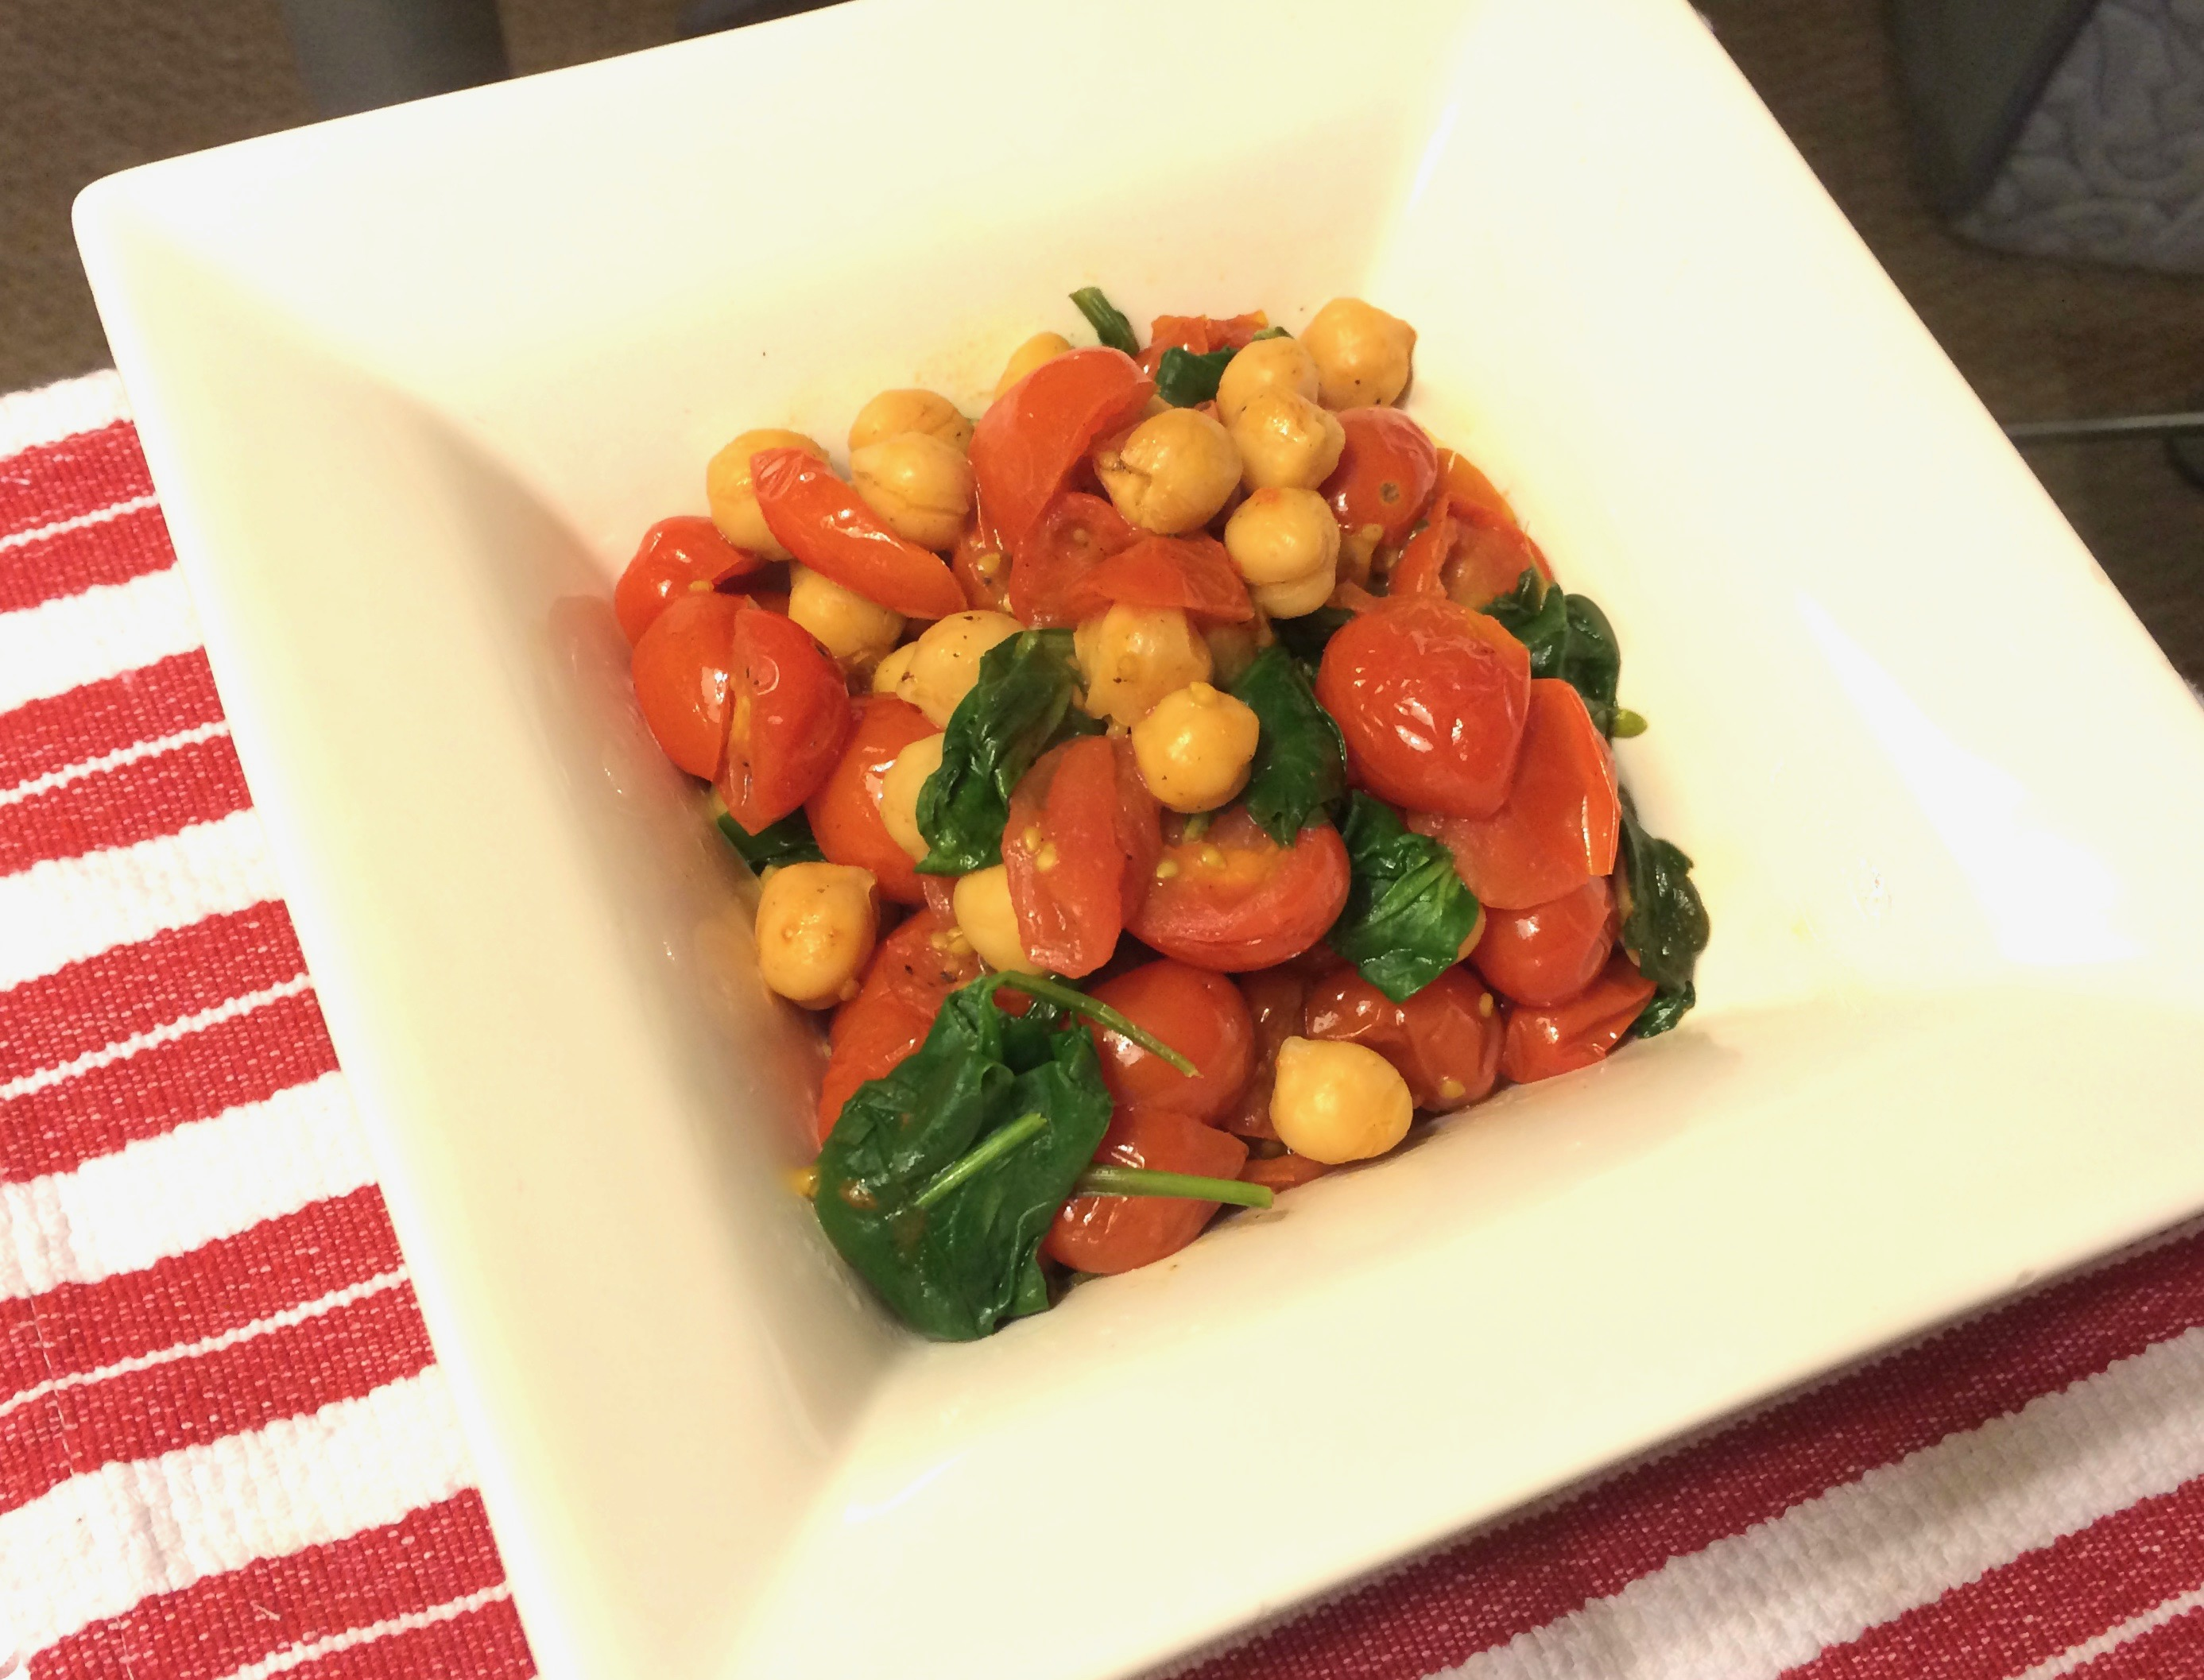 Chickpeas With Garlic, Tomatoes And Spinach